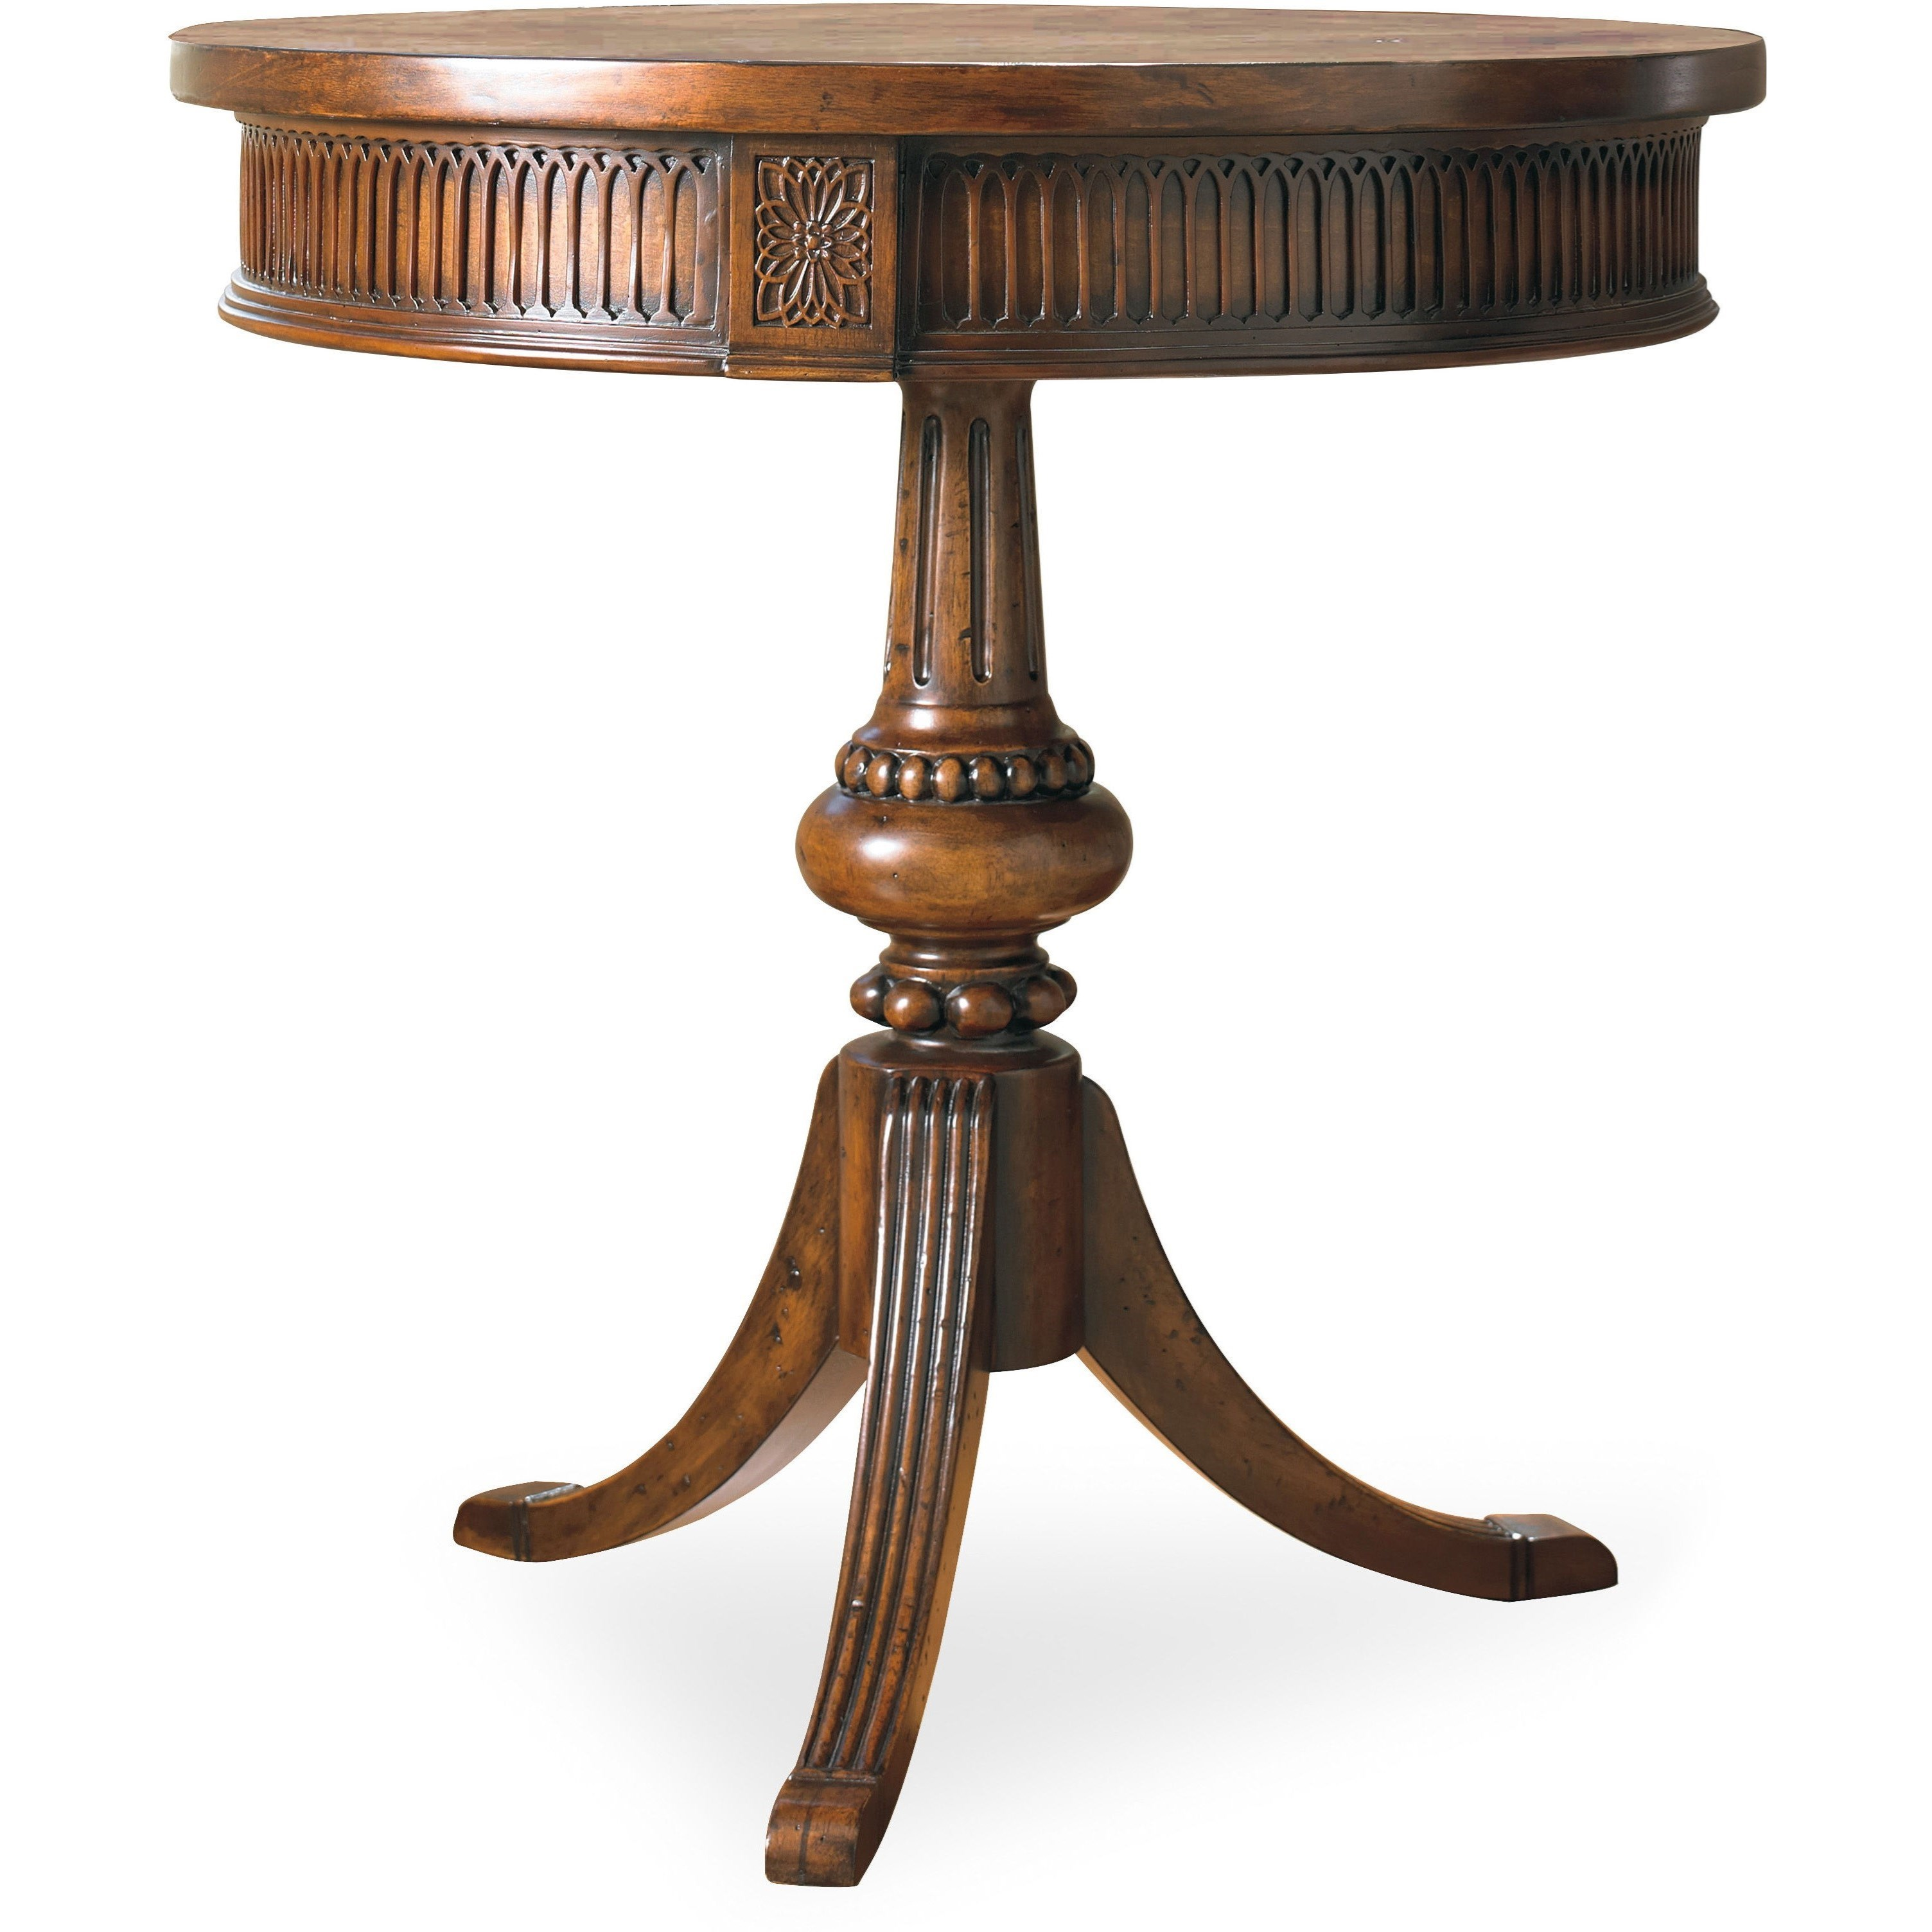 Living Room Accents Round Pedestal Accent Table by Hooker Furniture at Alison Craig Home Furnishings